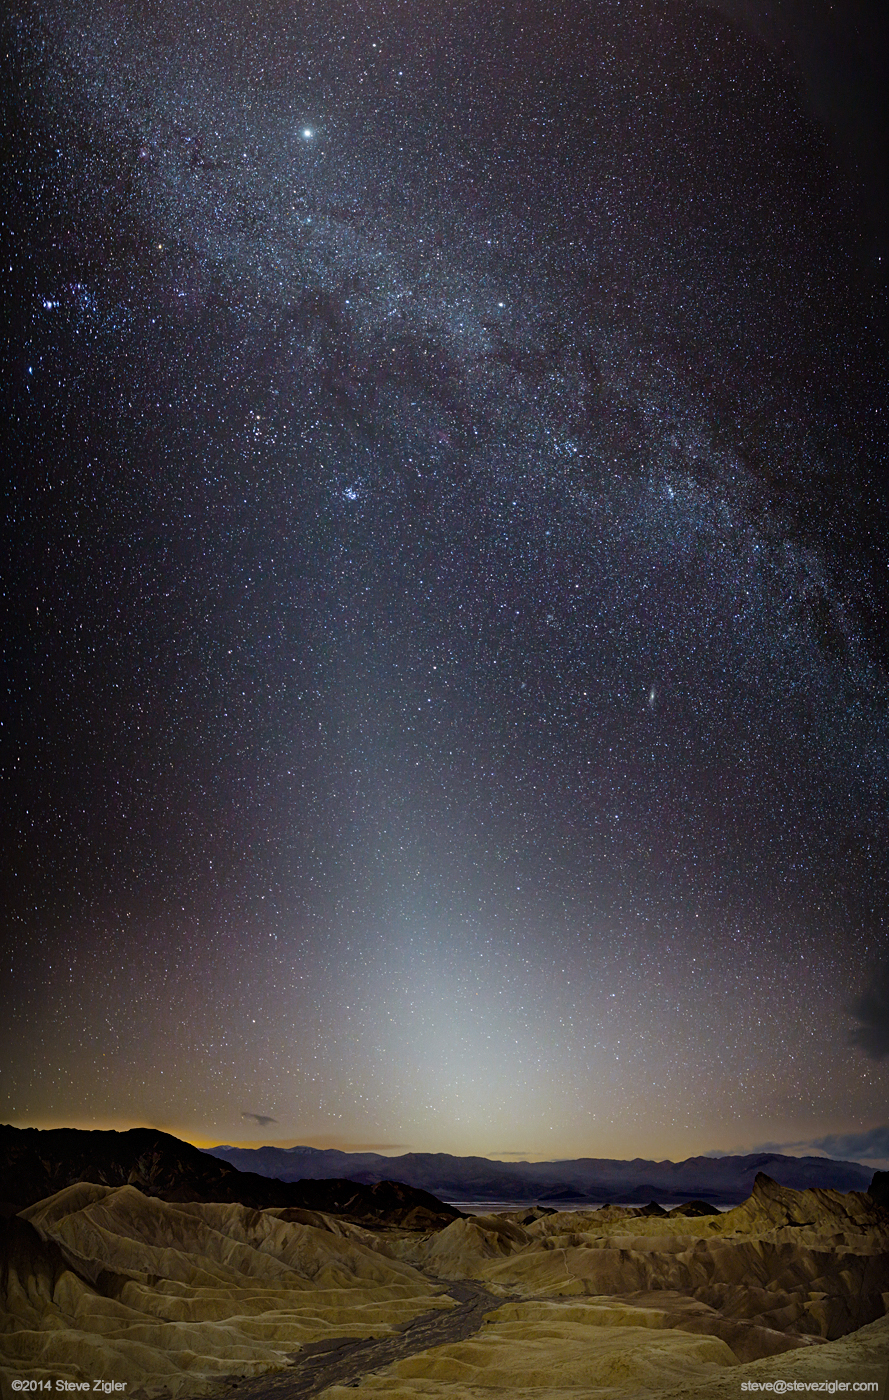 Ghostly Zodiacal Light Glows Over Death Valley (Photo)